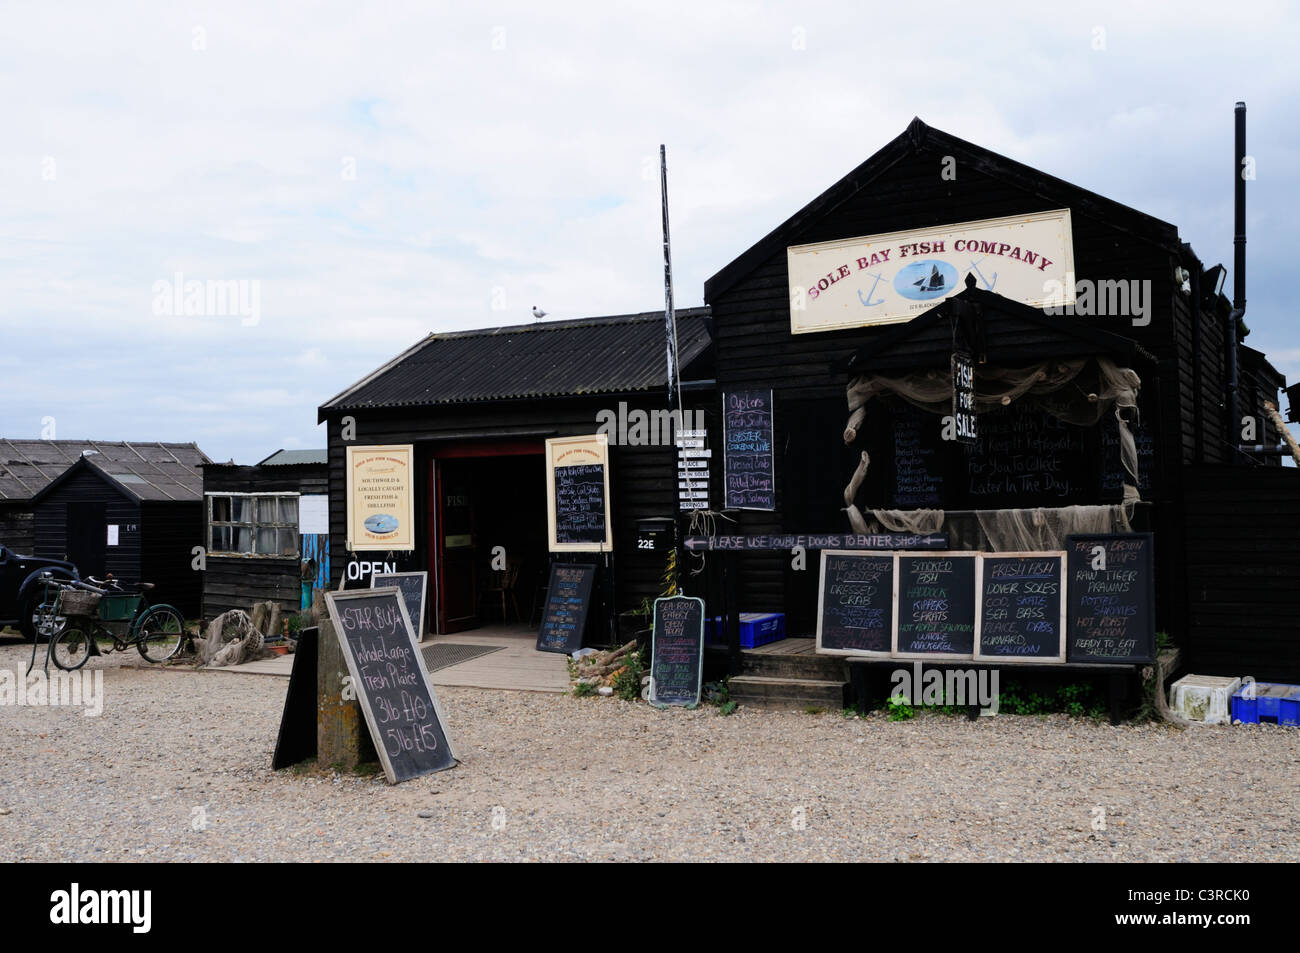 Suola Bay Fish Company Shop, Southwold Harbour, Suffolk, Inghilterra, Regno Unito Immagini Stock